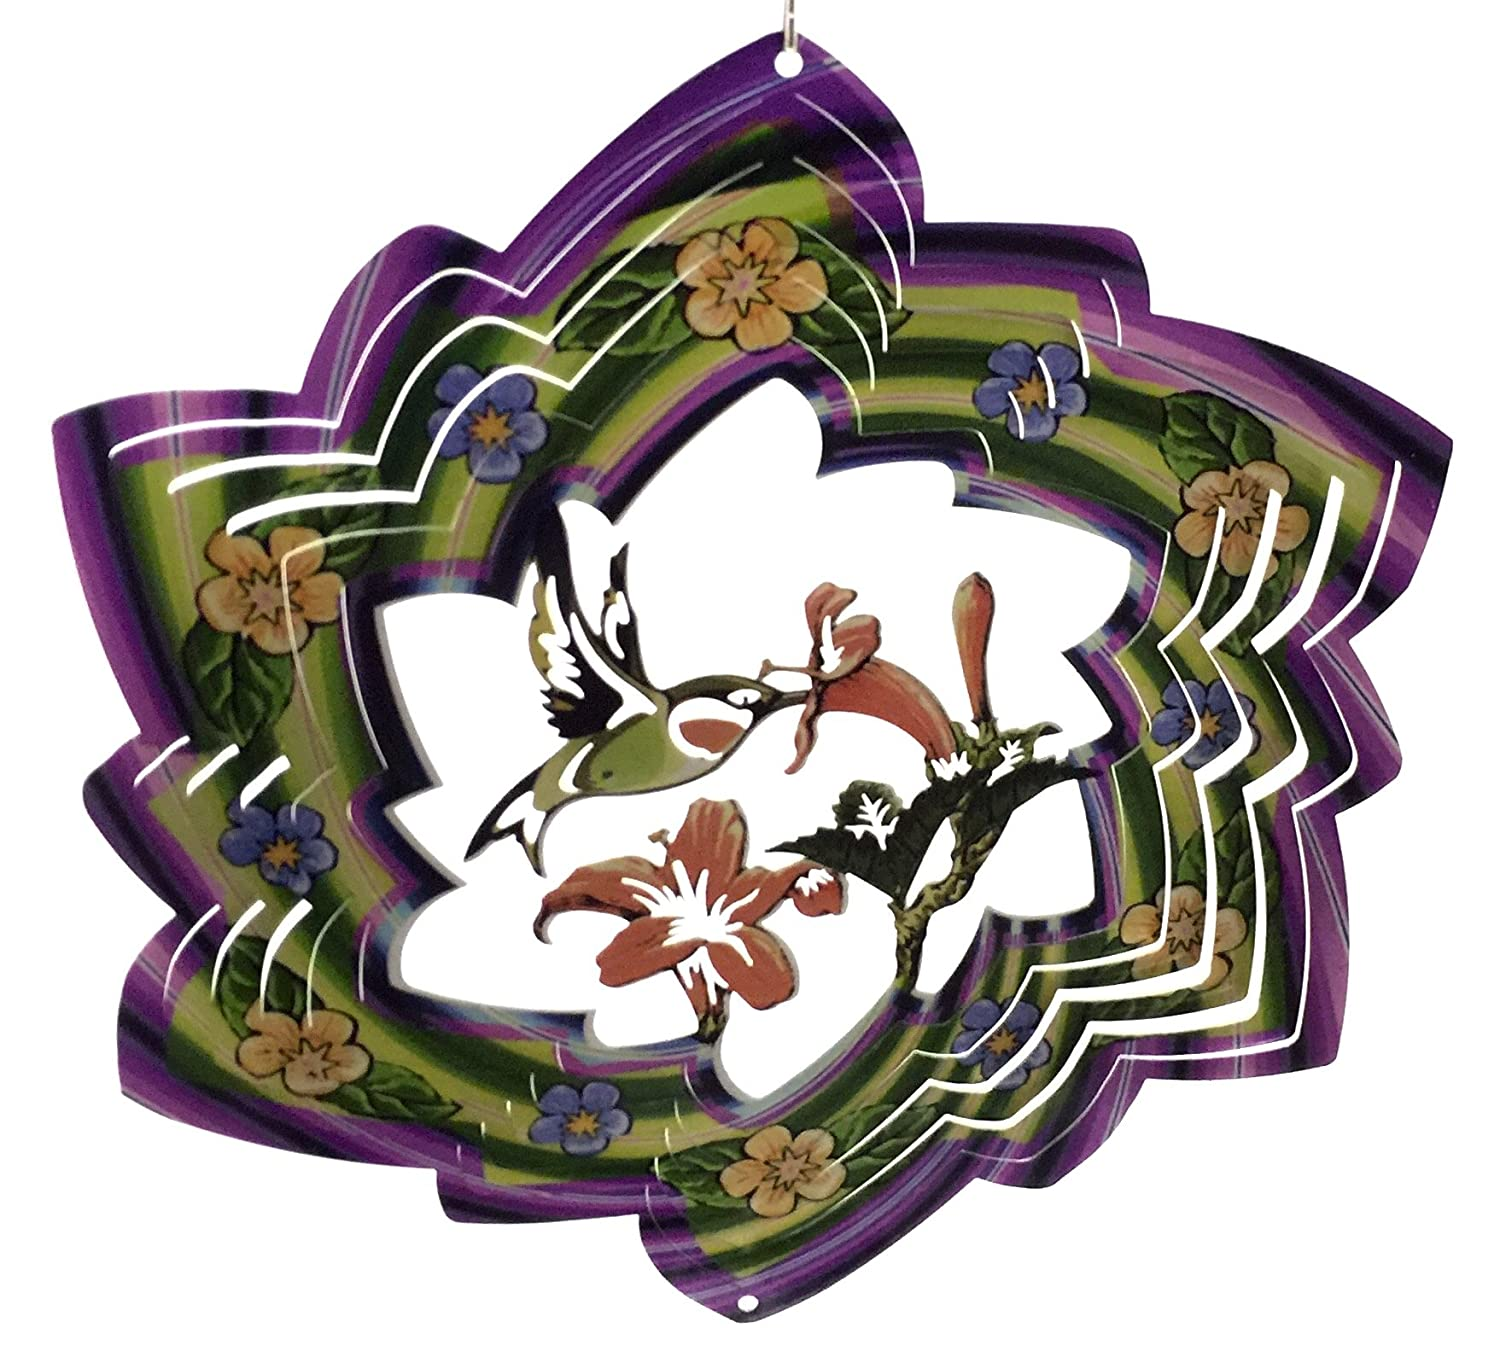 12 inch flower with HUMMINGBIRD Design 3-D Finest details and Highest Detail Zephyr Spiral Wind Spinner Zephyr Spirals